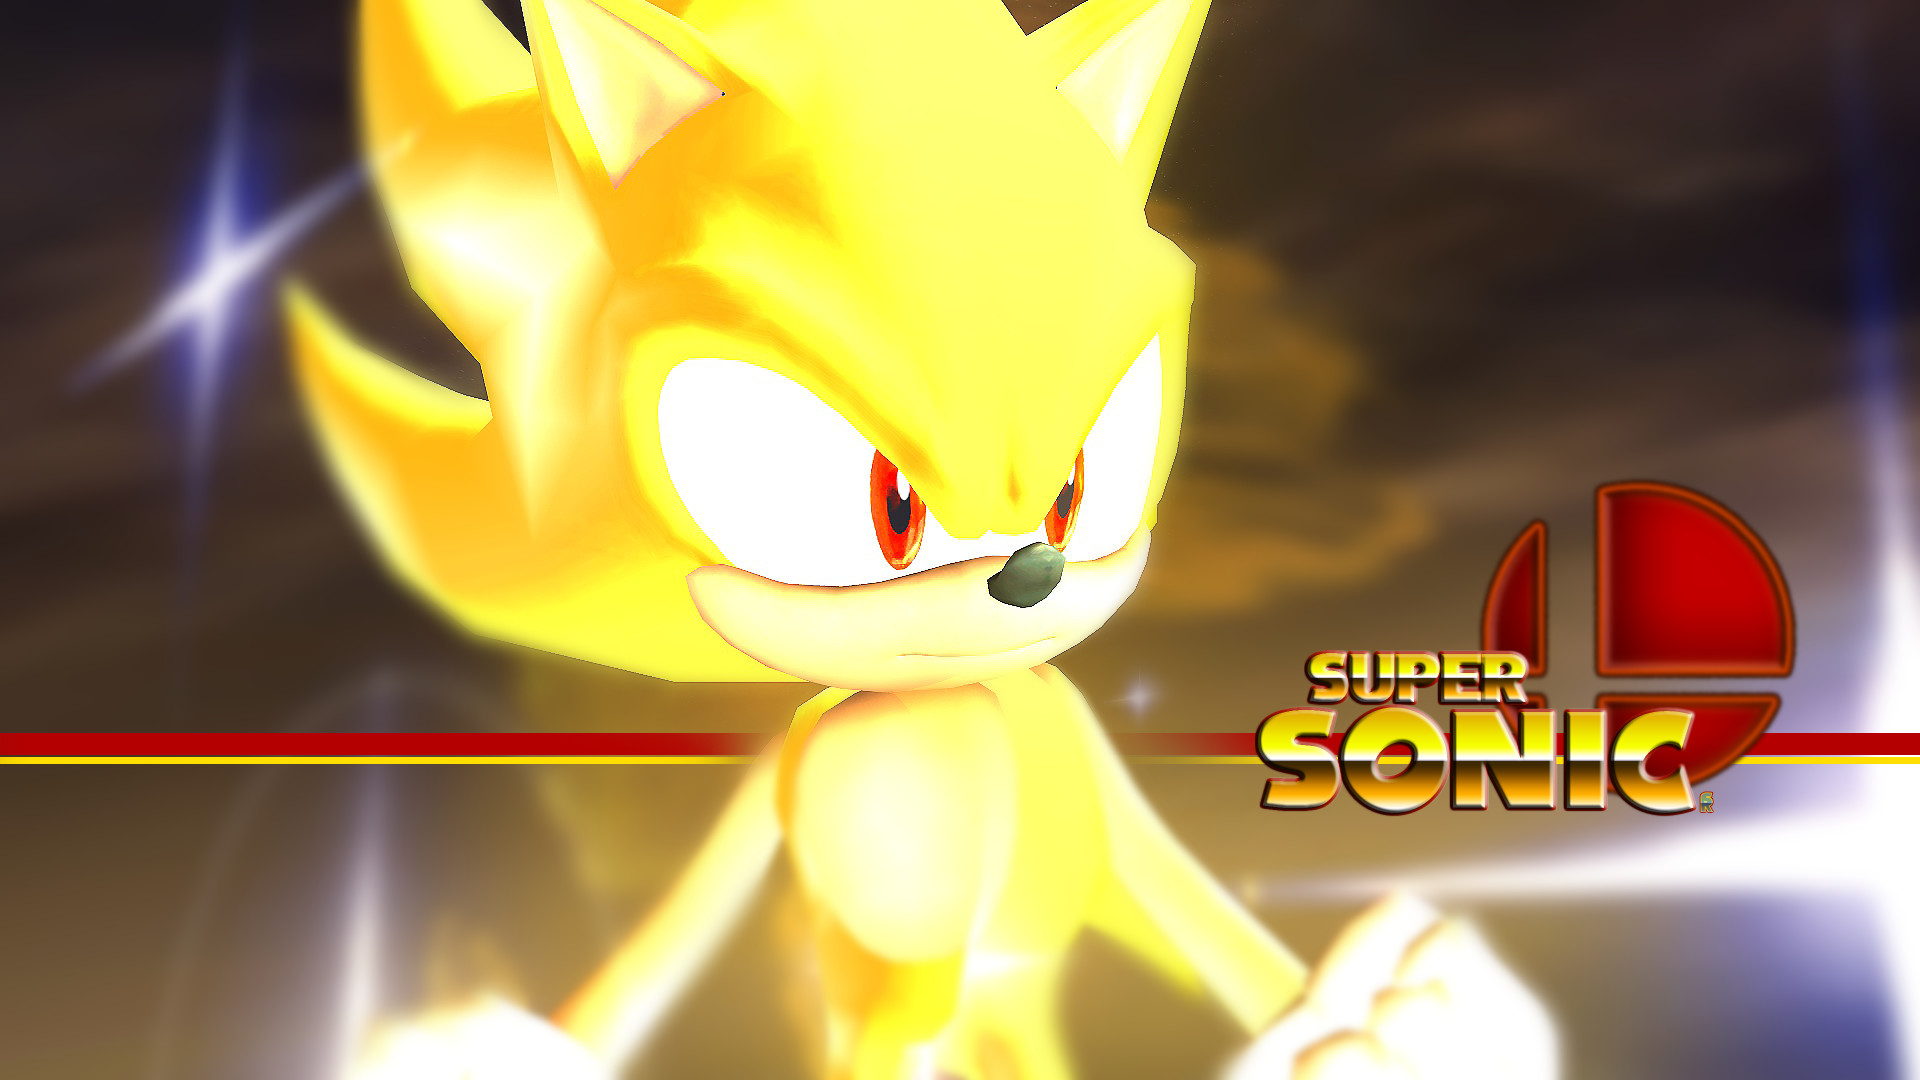 1920x1080 SSBB Supersonic Wallpaper by RealSonicSpeed SSBB Supersonic Wallpaper by  RealSonicSpeed